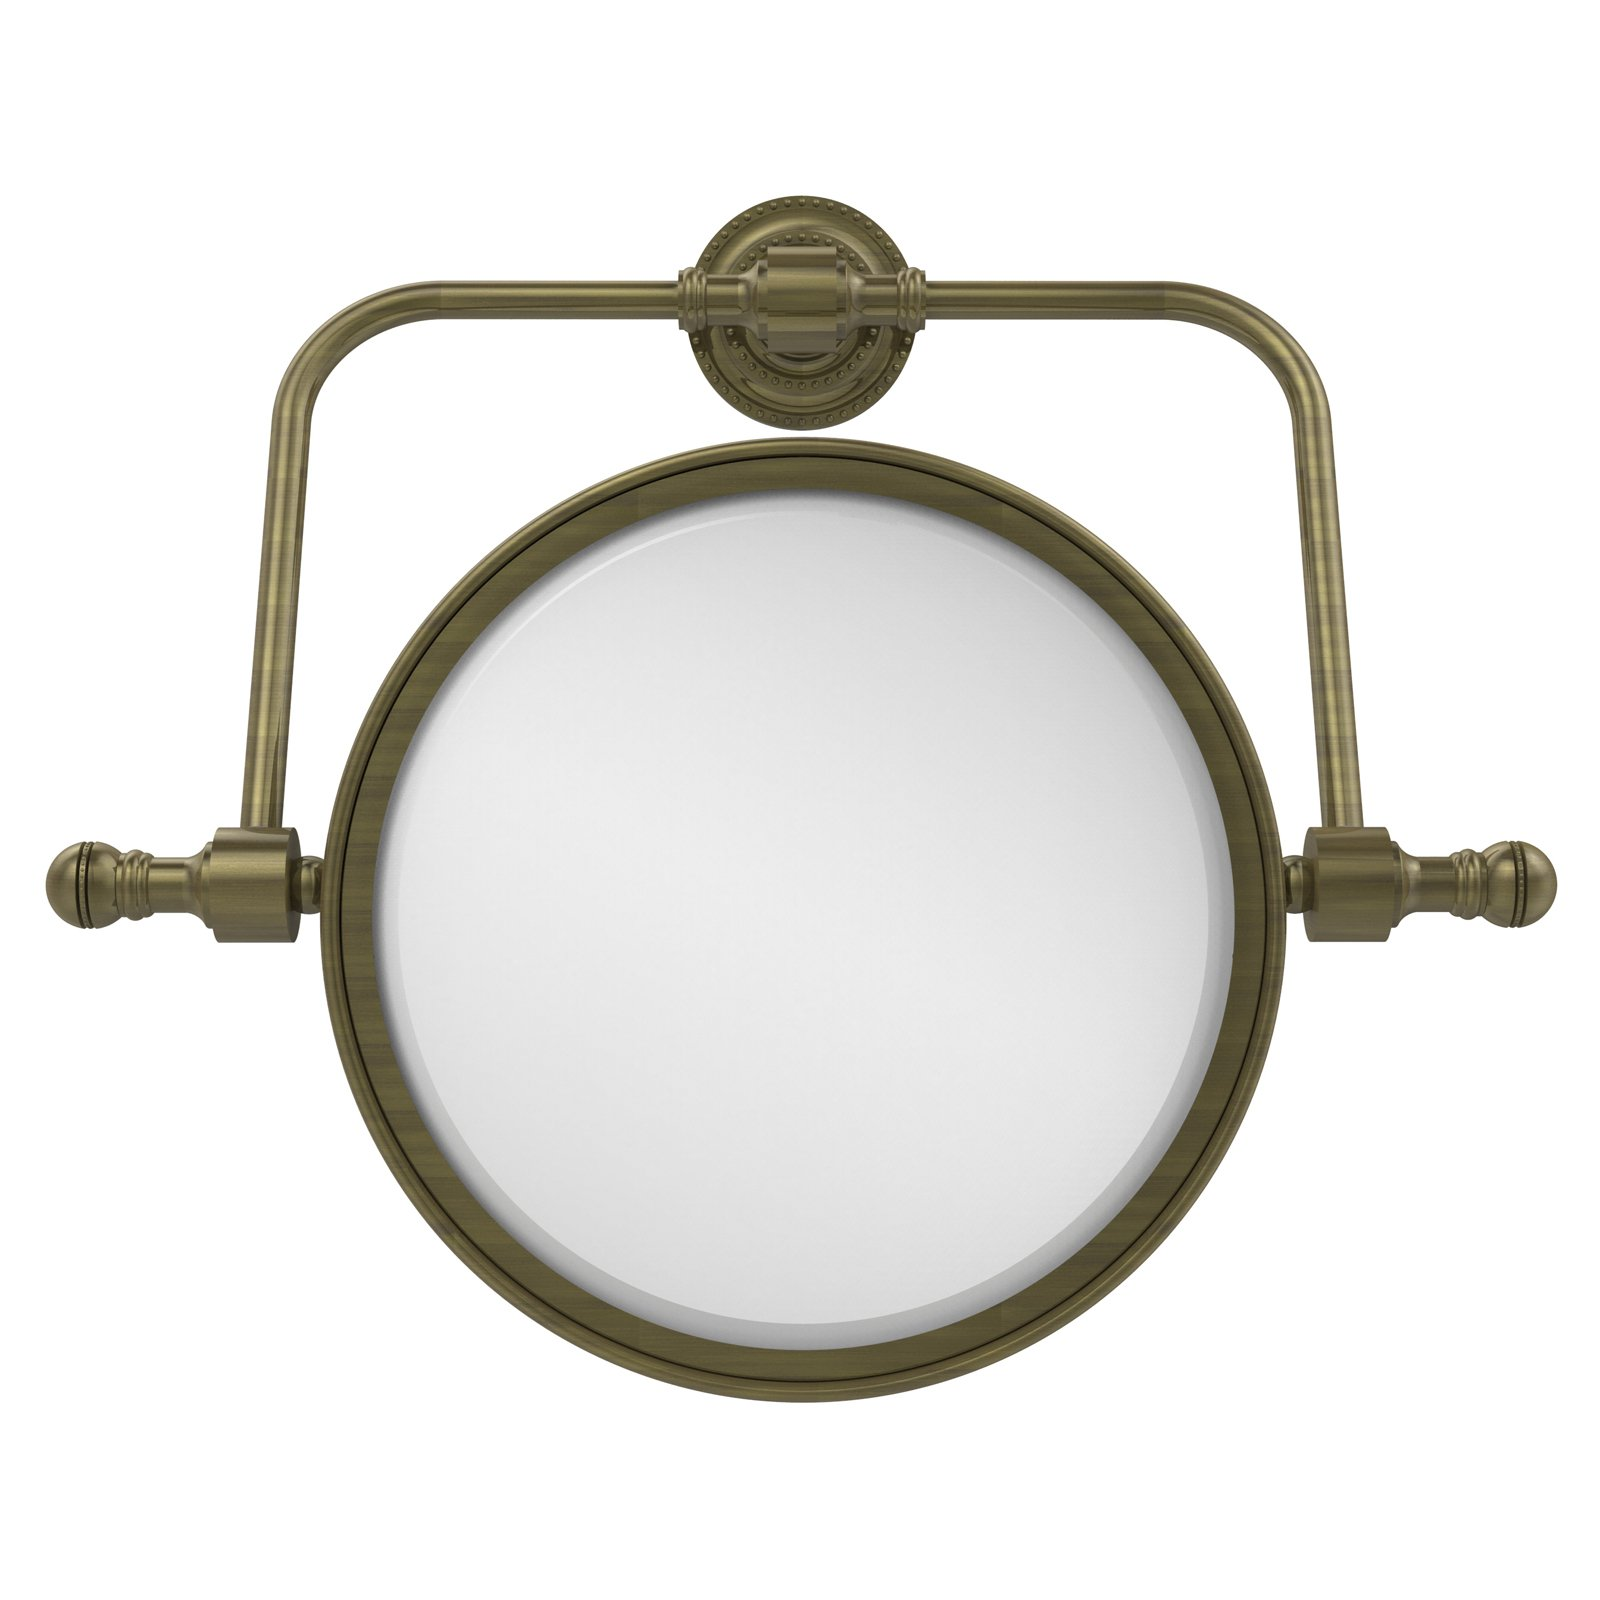 Retro Dot Collection Wall Mounted Swivel Make-Up Mirror 8 Inch Diameter with 3X Magnification